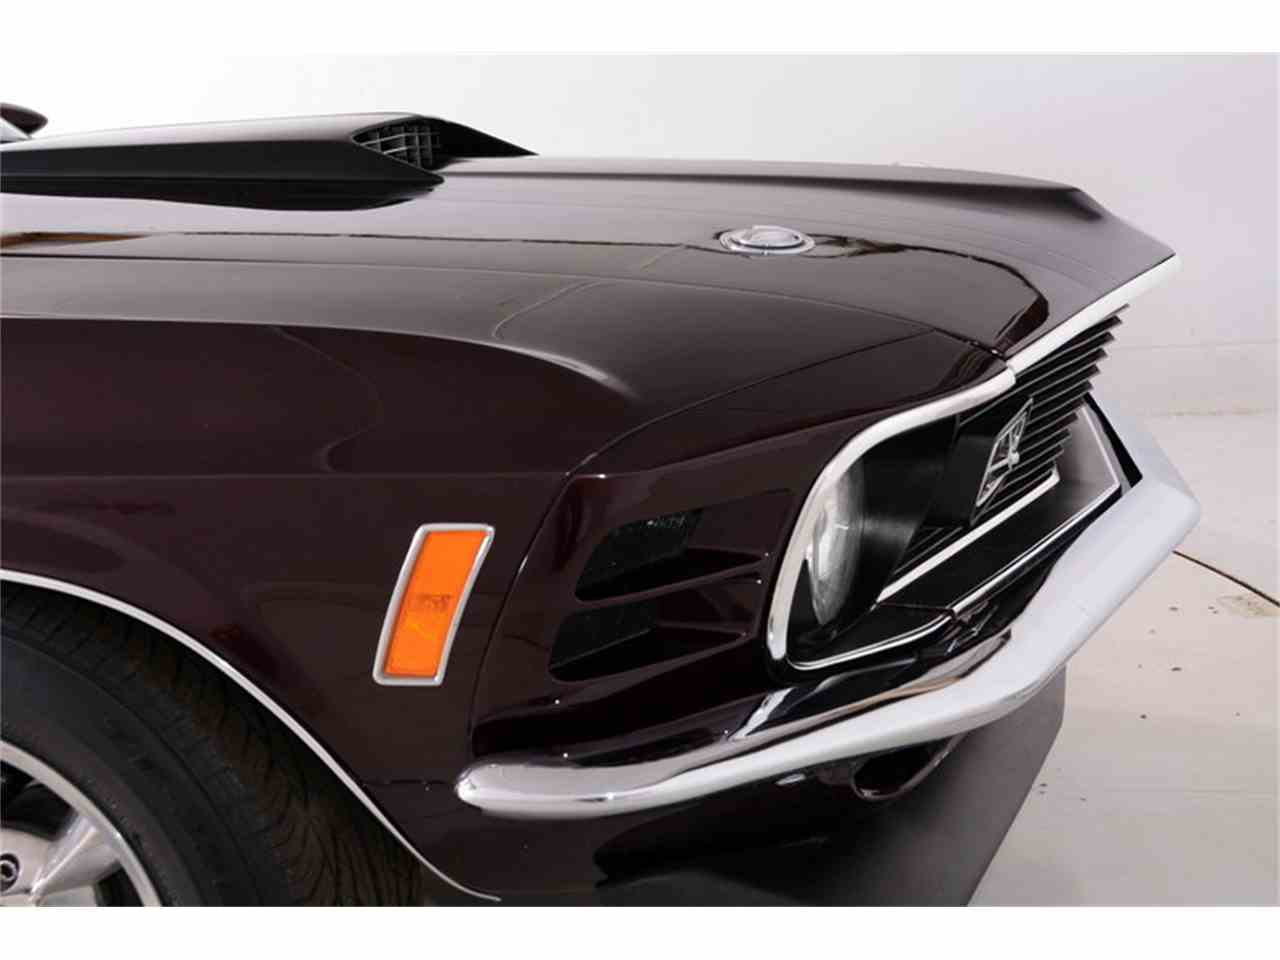 Large Picture of Classic '70 Ford Mustang Mach 1 Pro Touring - $41,998.00 - L8H9